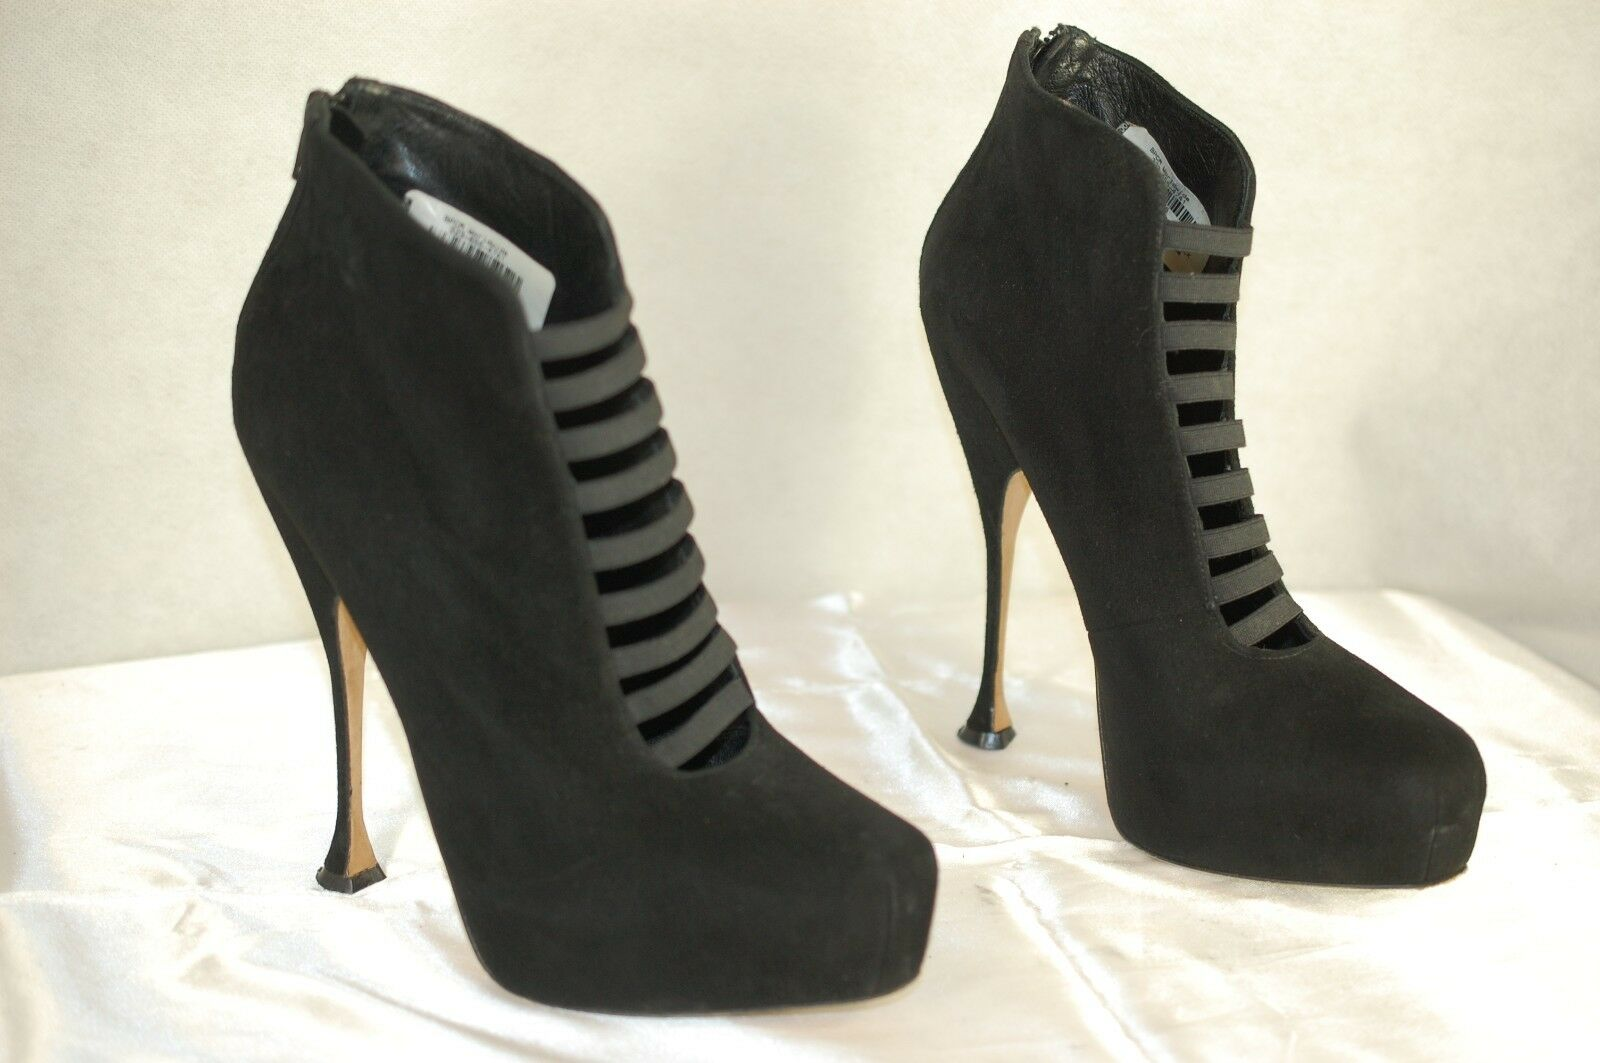 BRIAN ATWOOD ATWOOD ATWOOD 'HILEX' MADE IN ITALY BLACK SUEDE WOMEN BOOTS EU 40 US 10 9094a6